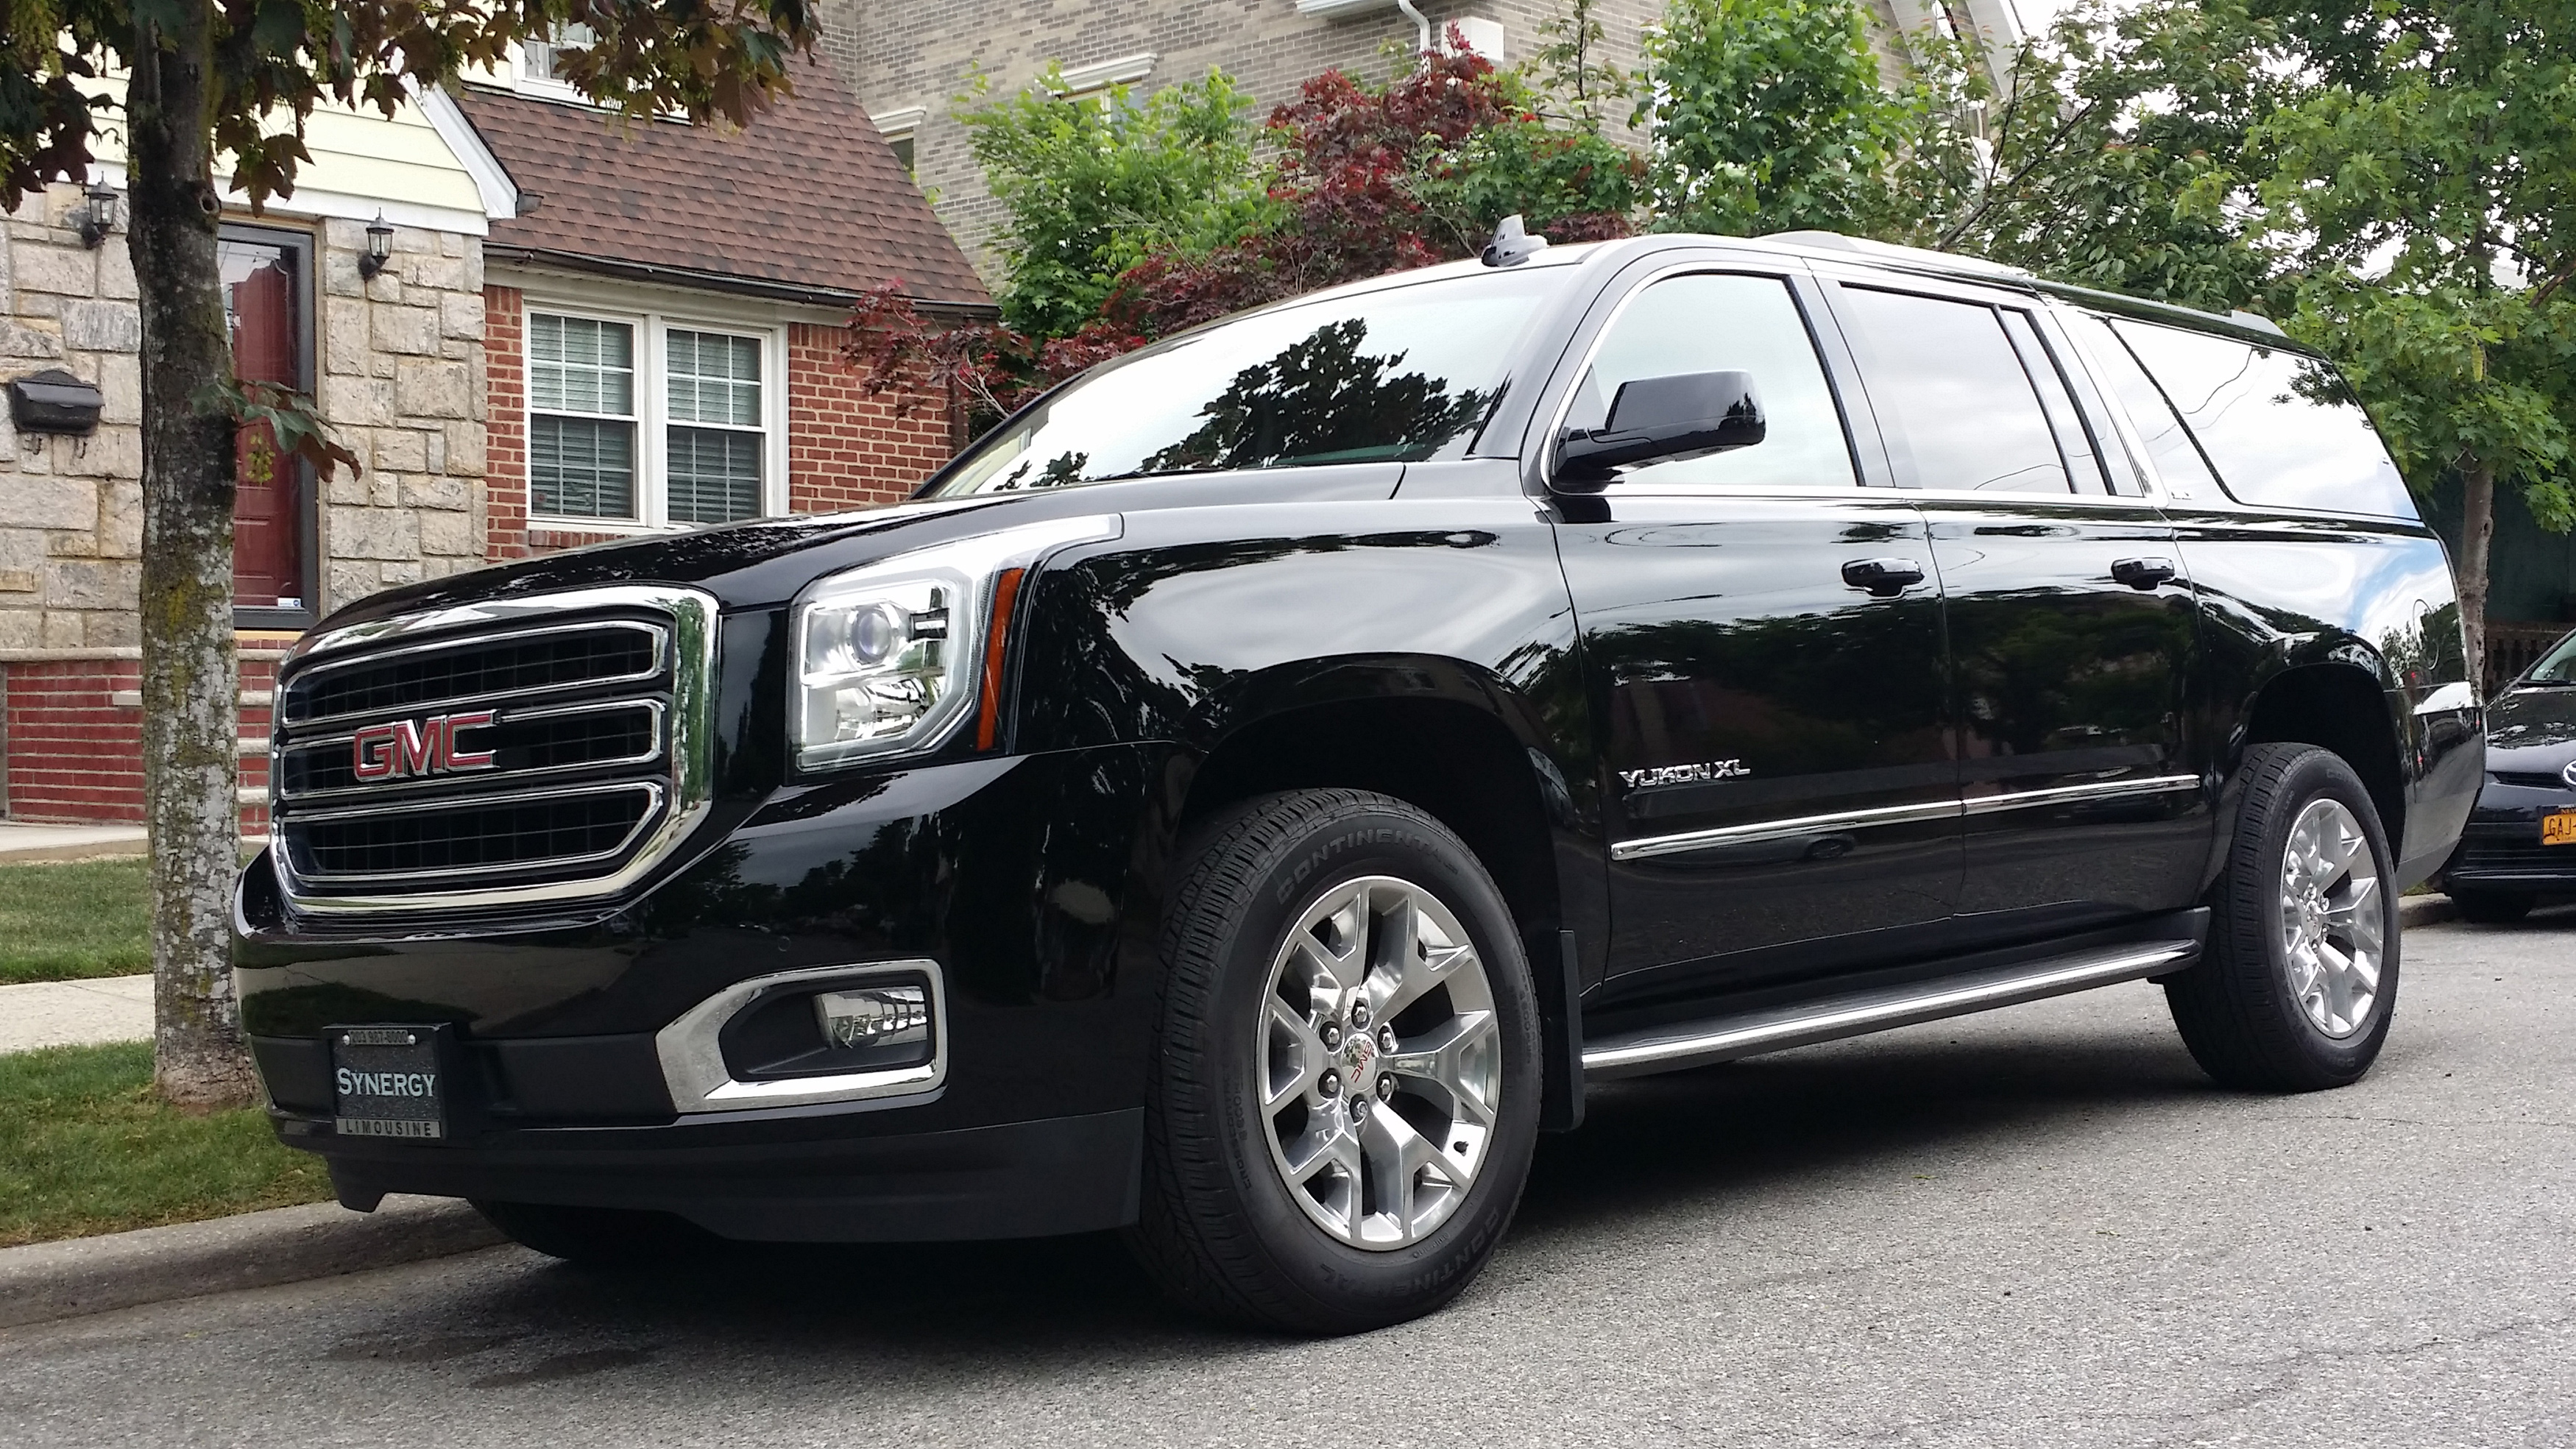 mcallen bestcarmag informations photos o makes gmc sierra com articles